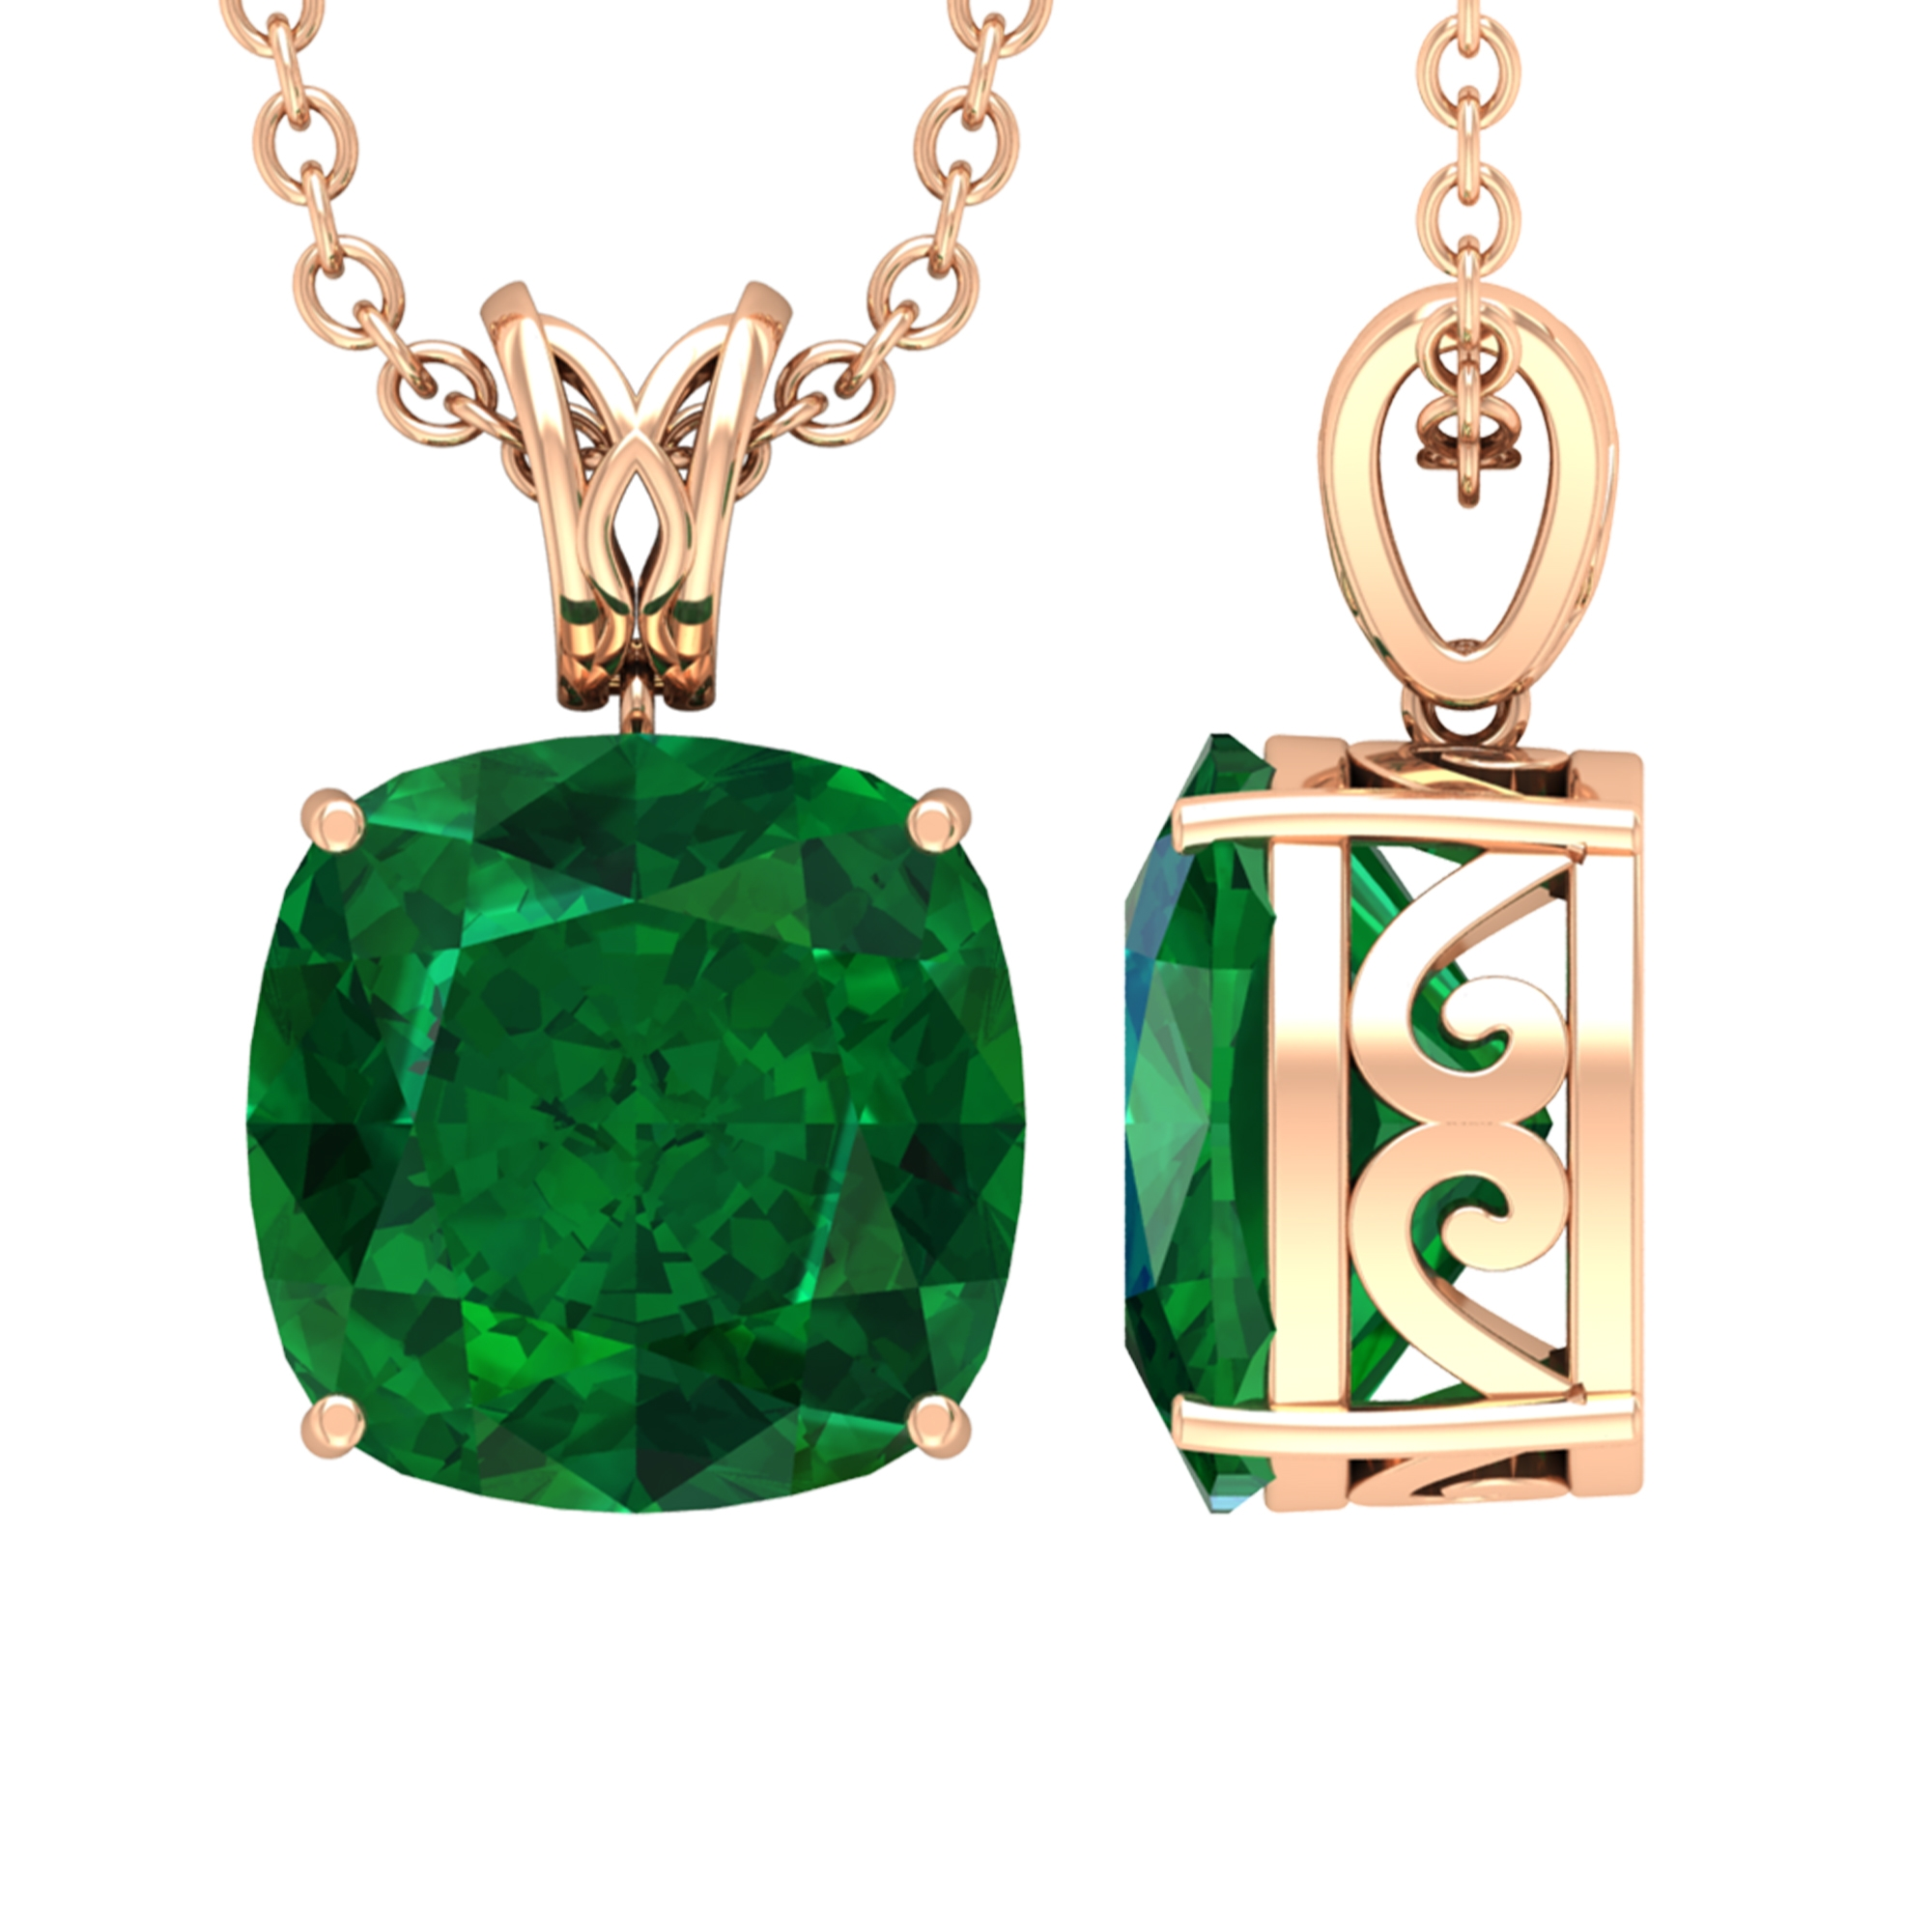 8 MM Cushion Cut Emerald Solitaire Pendant in 4 Prong Setting with Decorative Bail